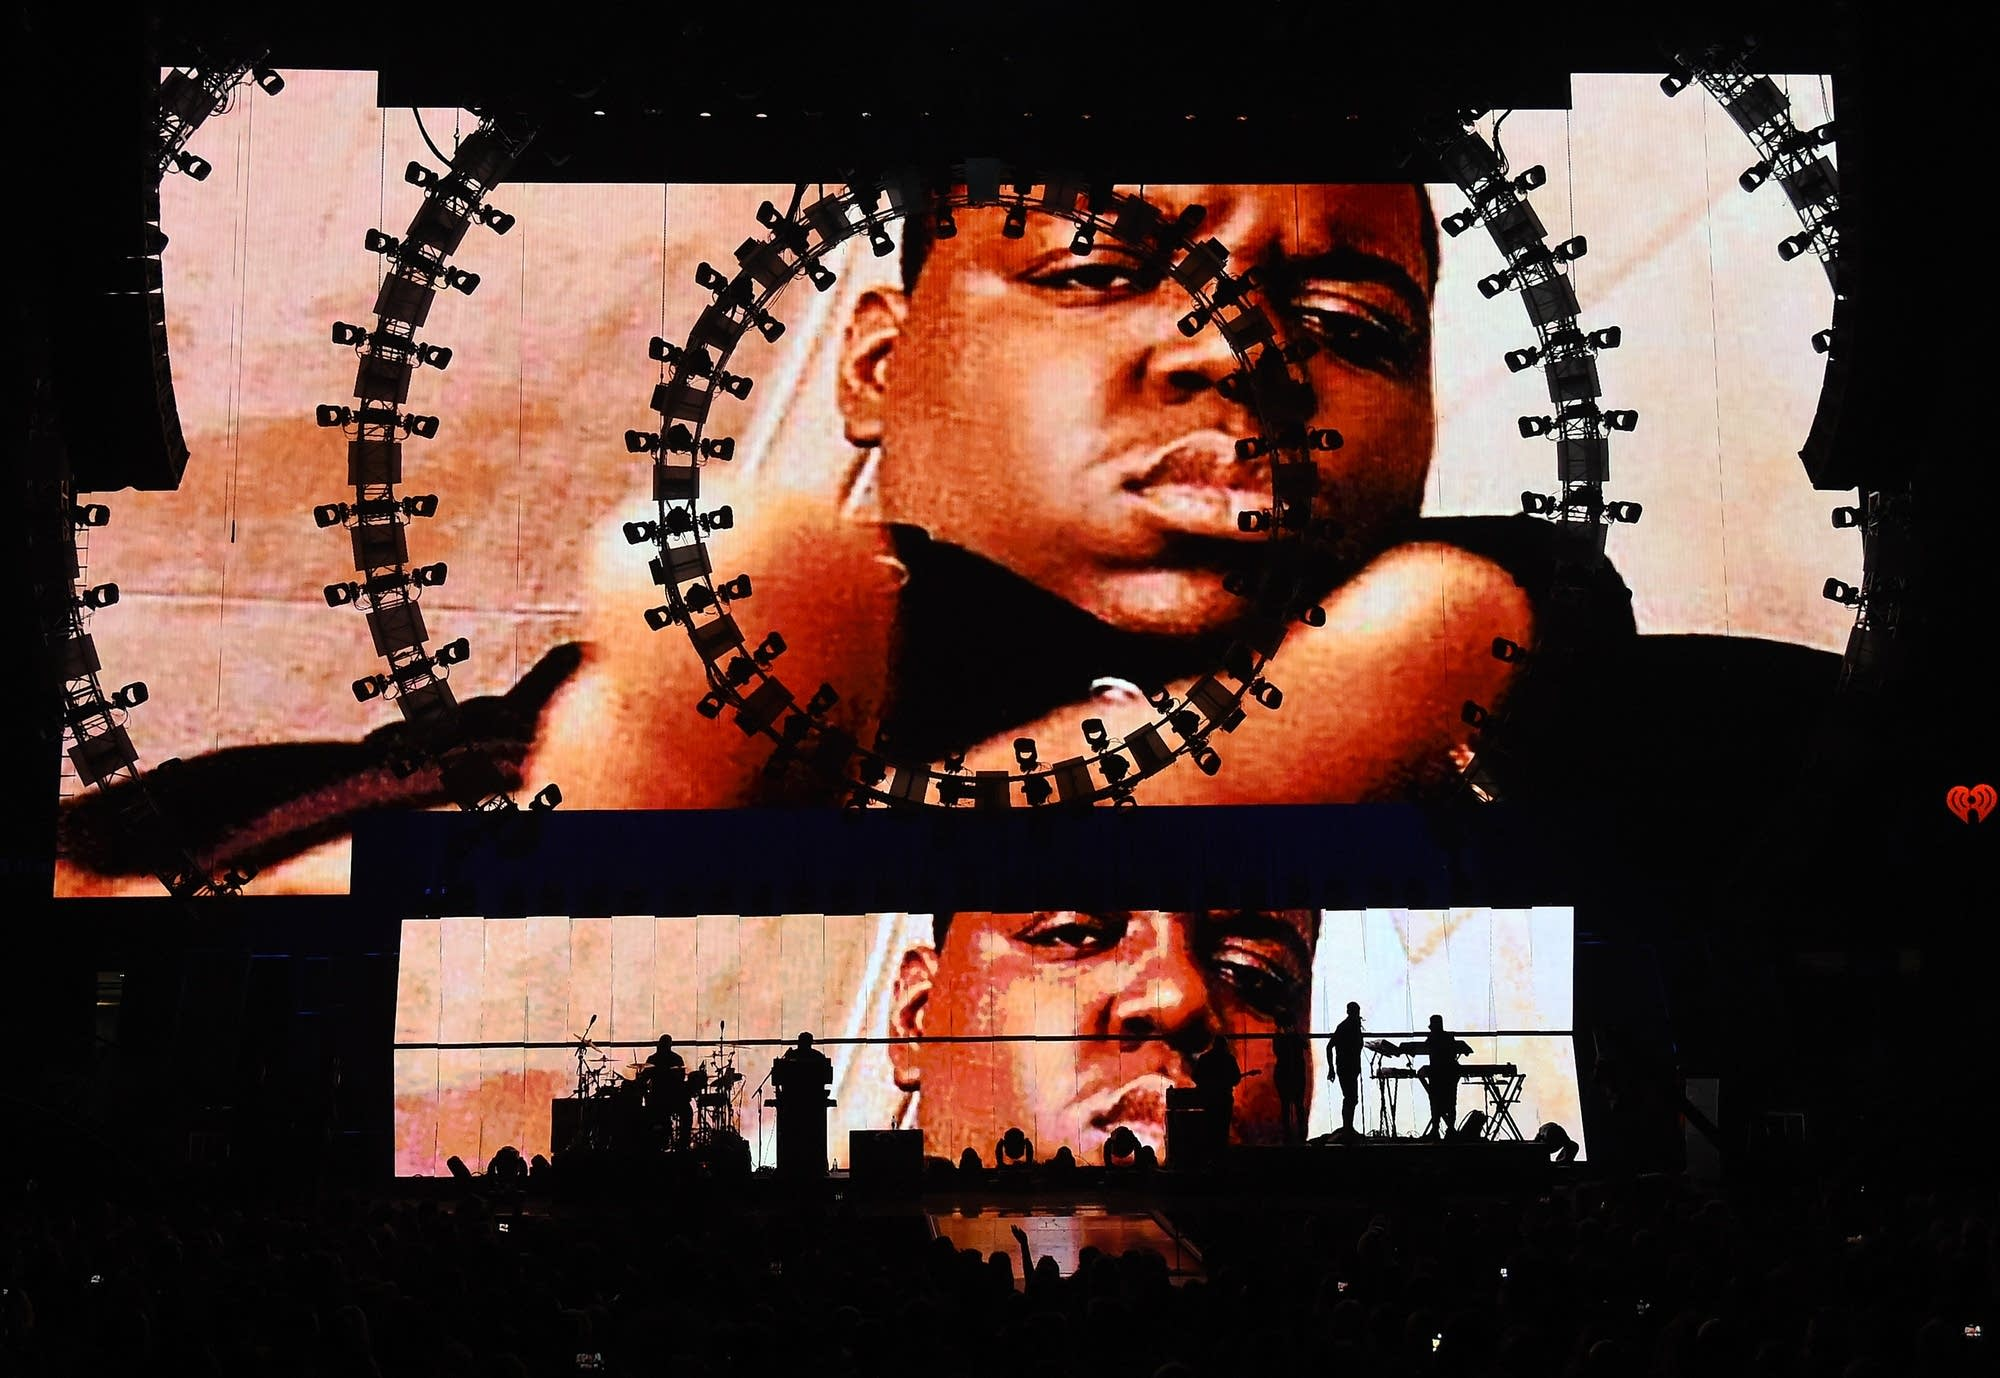 Images of Notorious B.I.G. during the 2015 iHeartRadio Music Festival